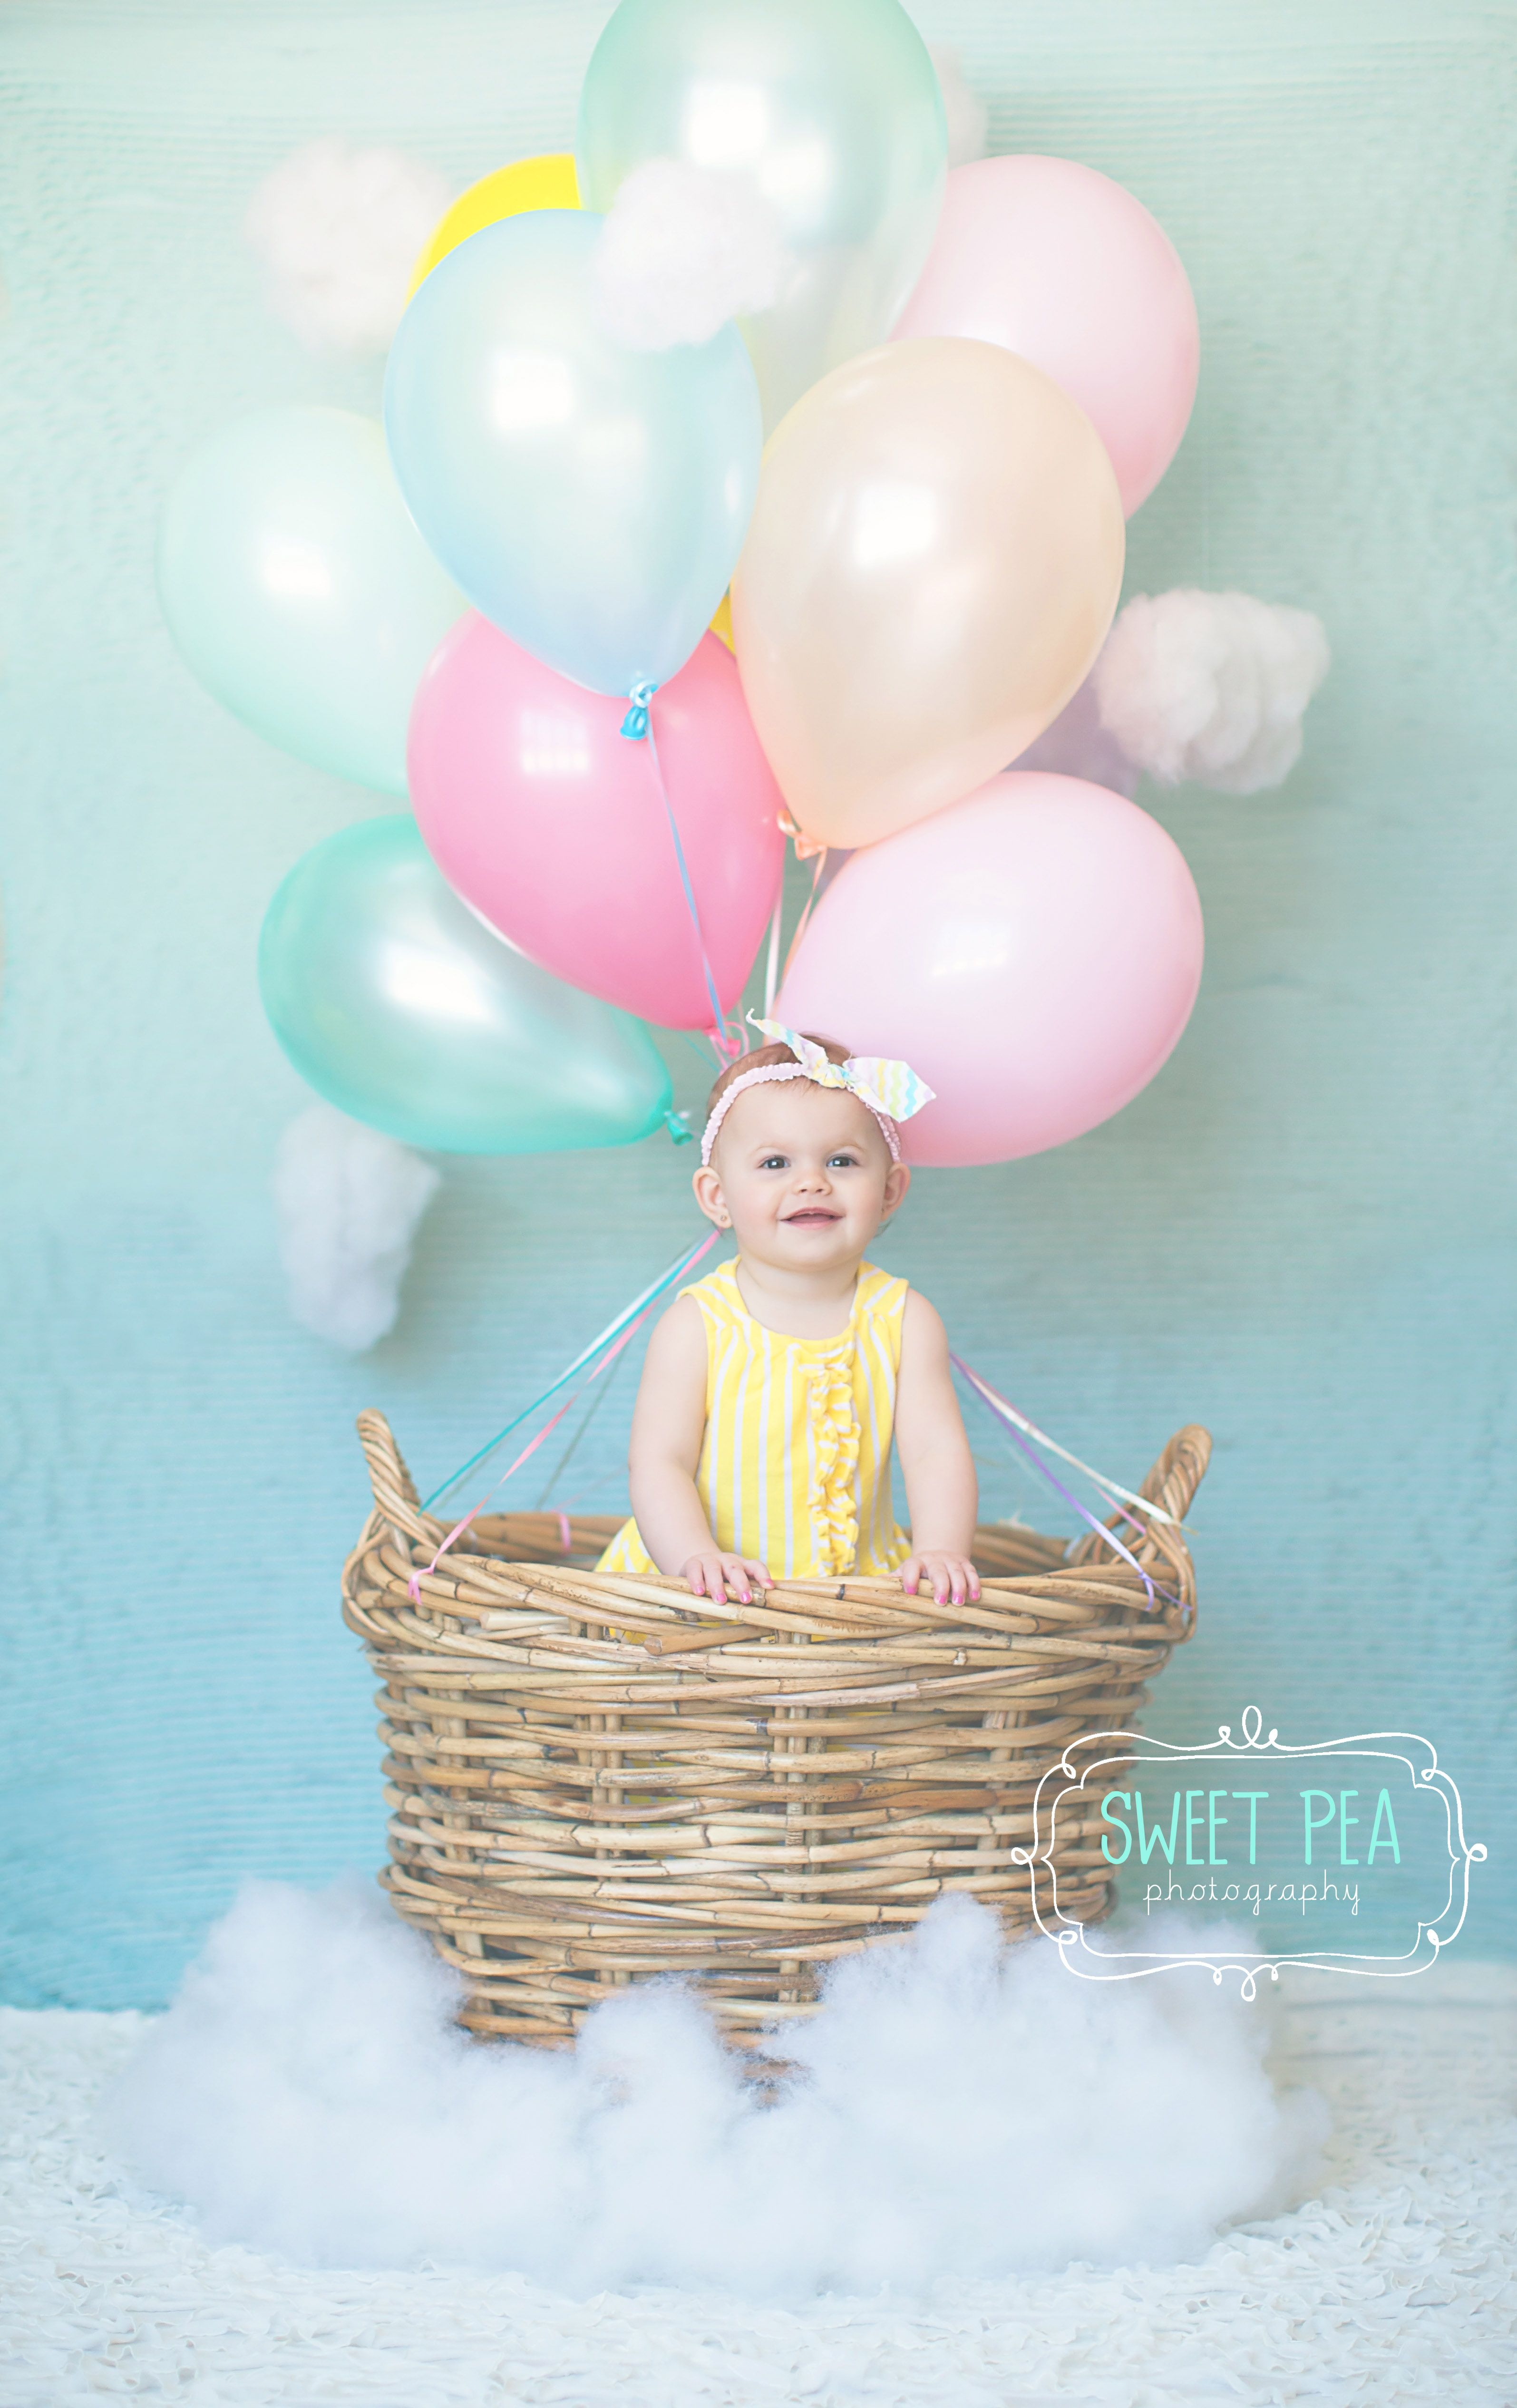 Hot Air Balloon, 1st Birthday, Sweet Pea Photography